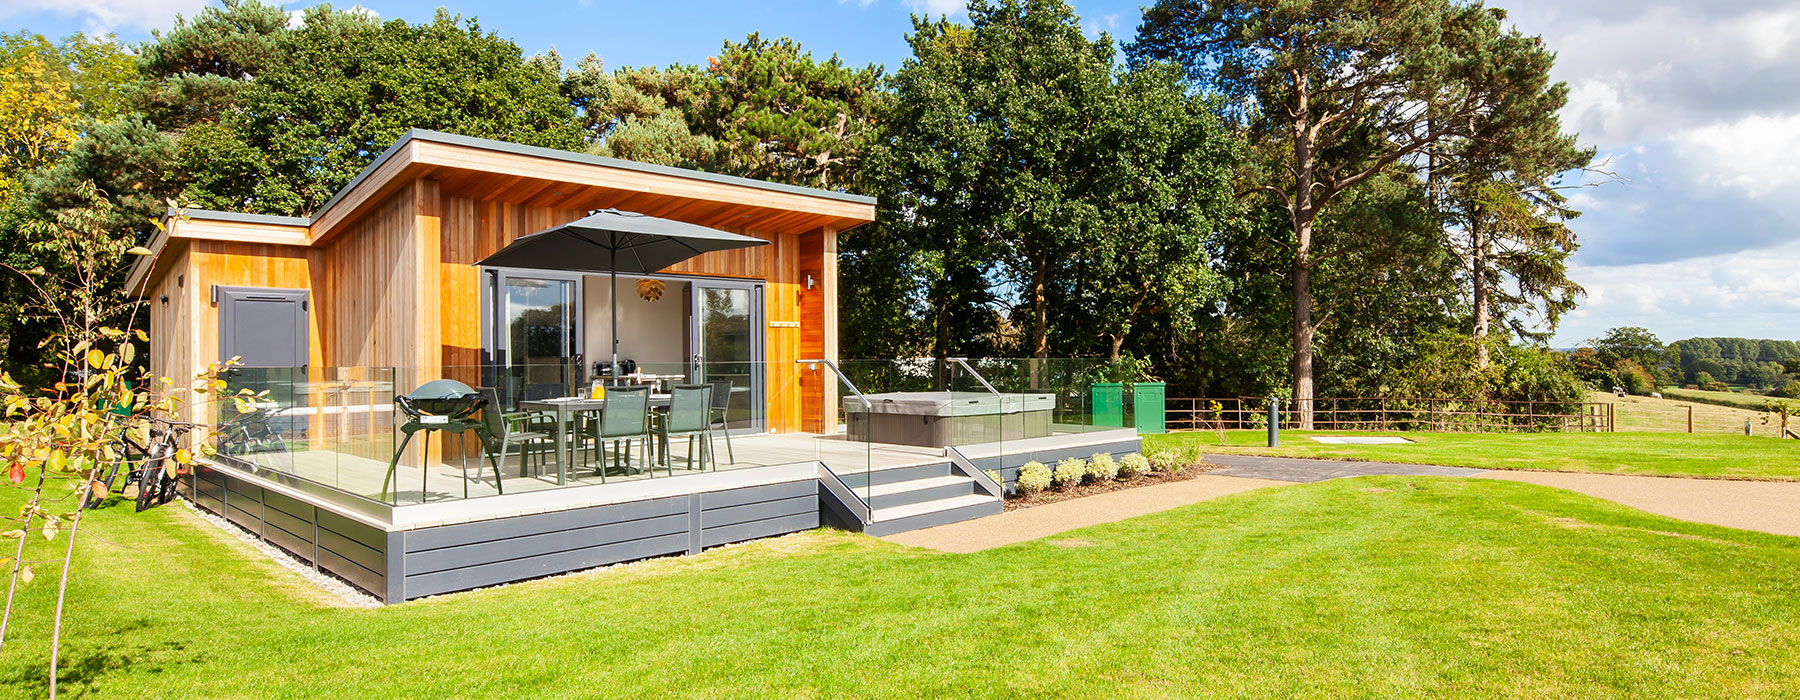 Luxury Glamping Lodges Now Open - Plassey